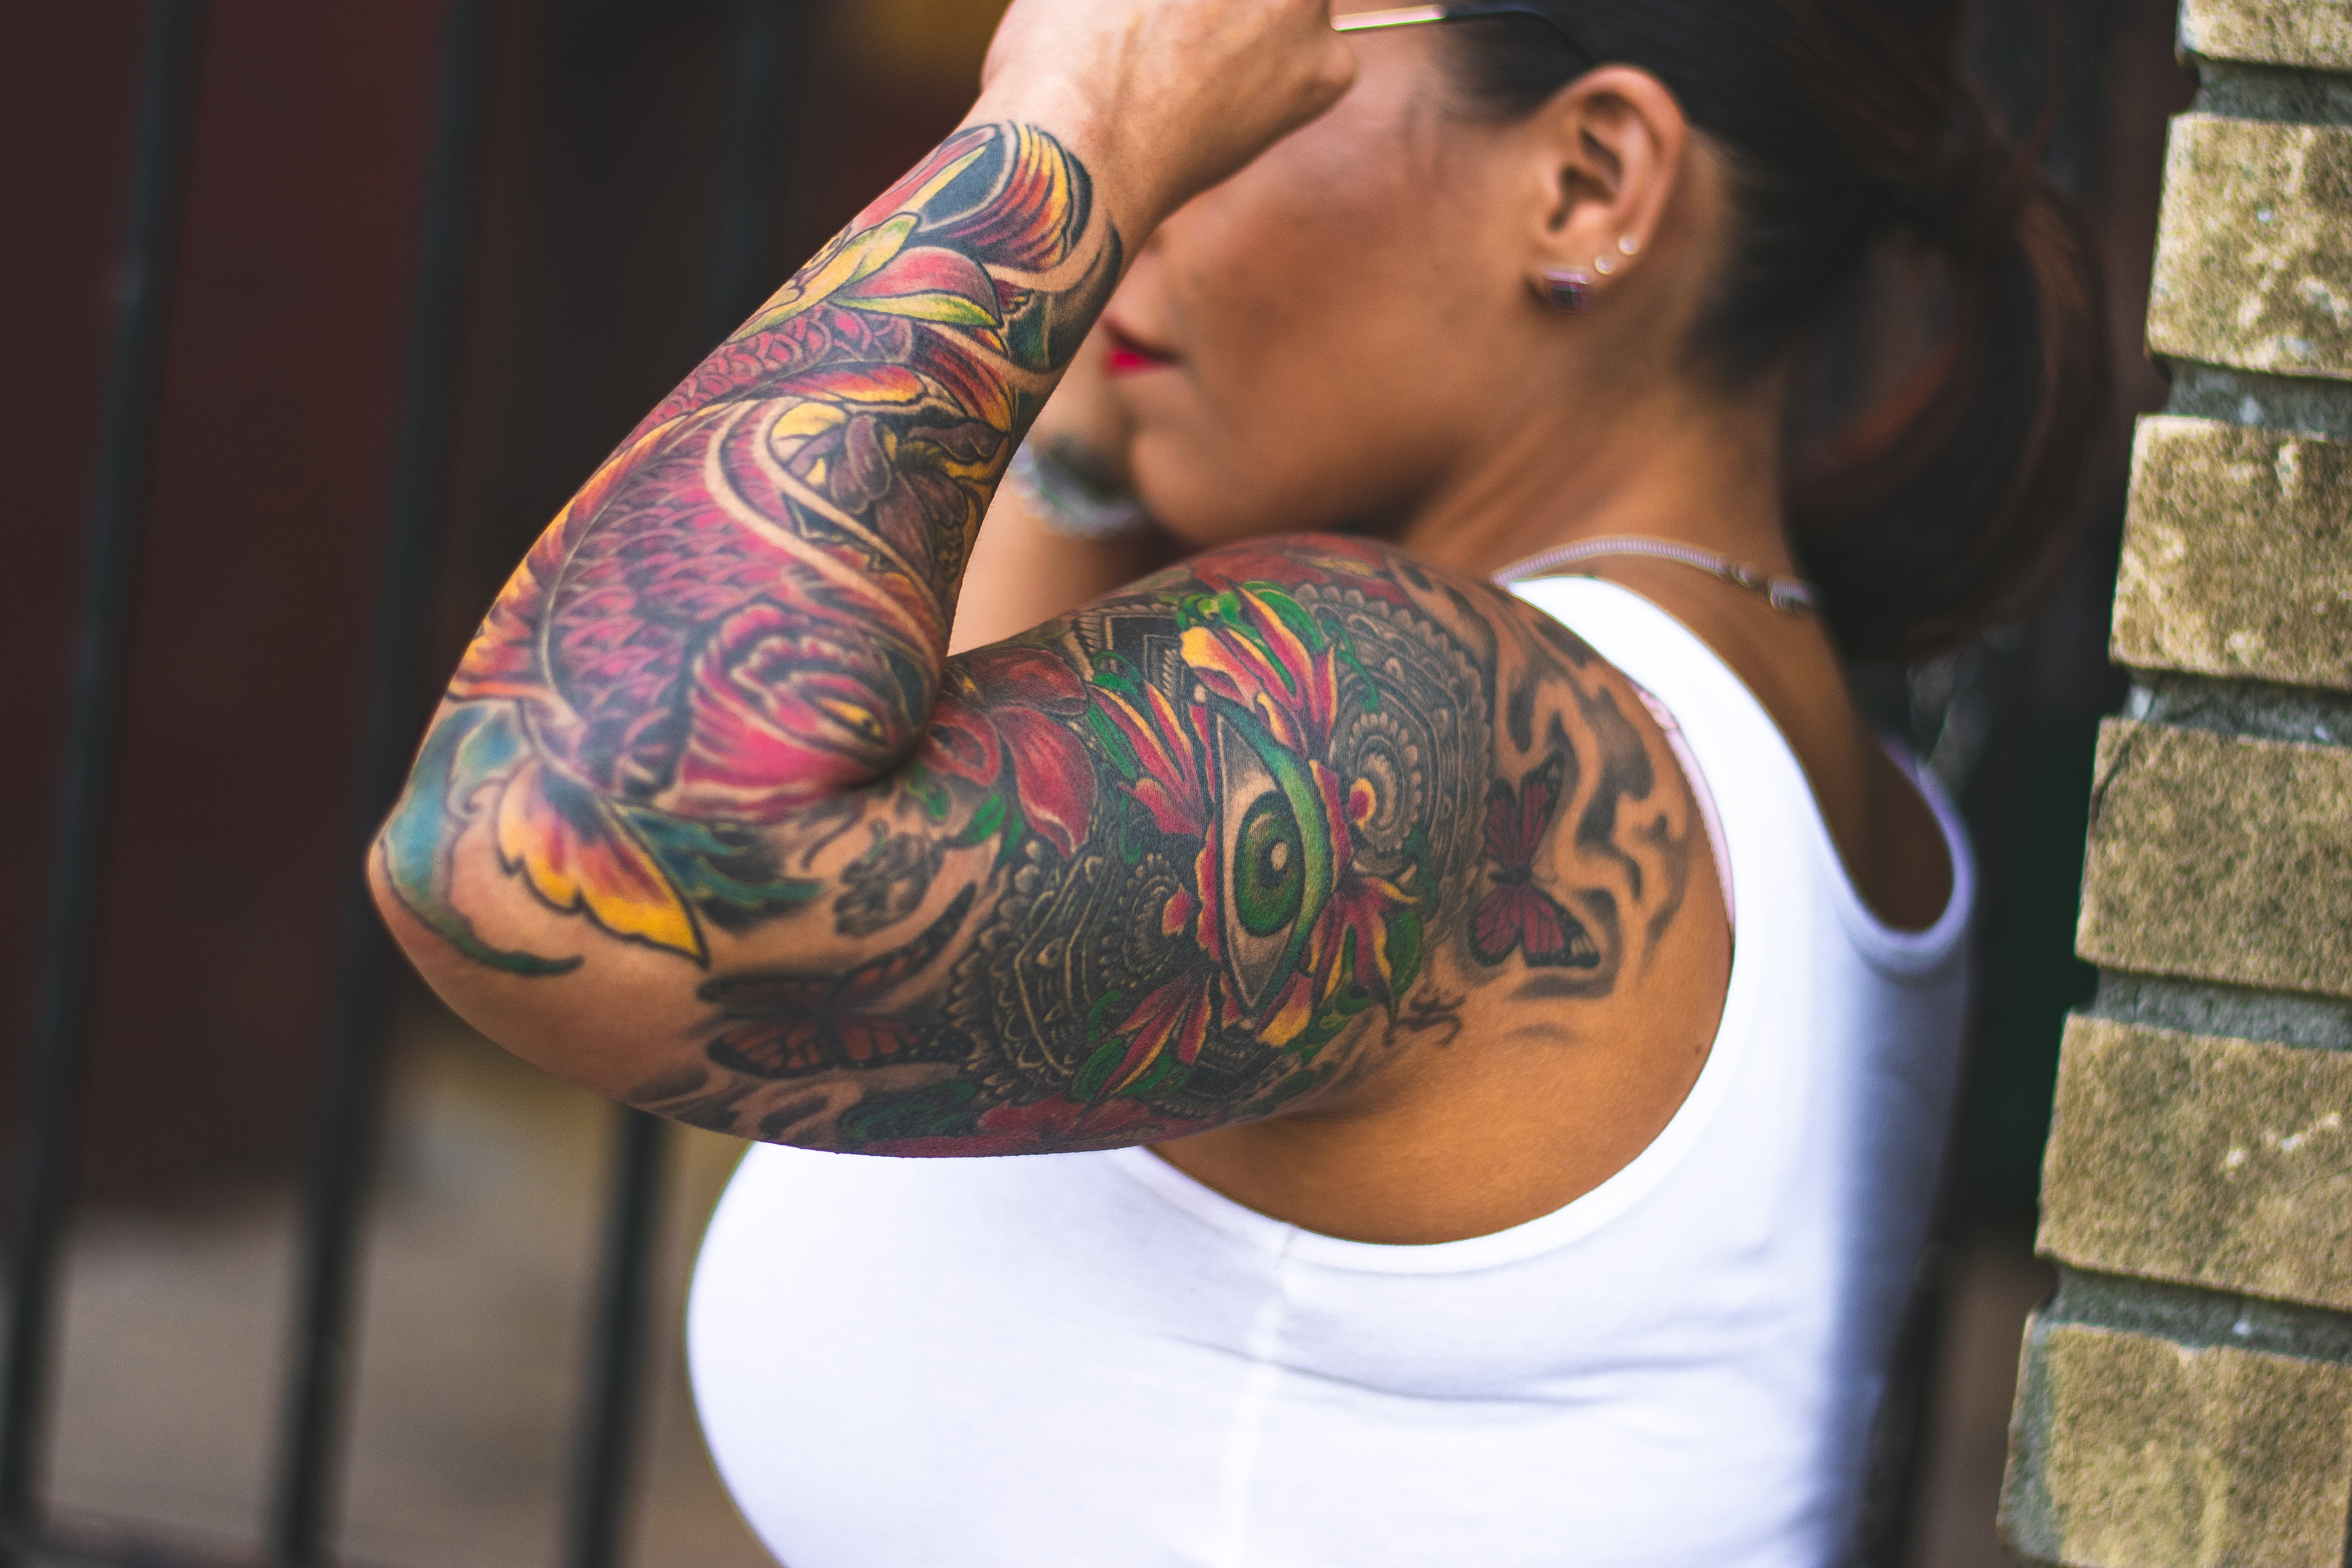 Close-Up Photo of Woman's Arm With Tattoo